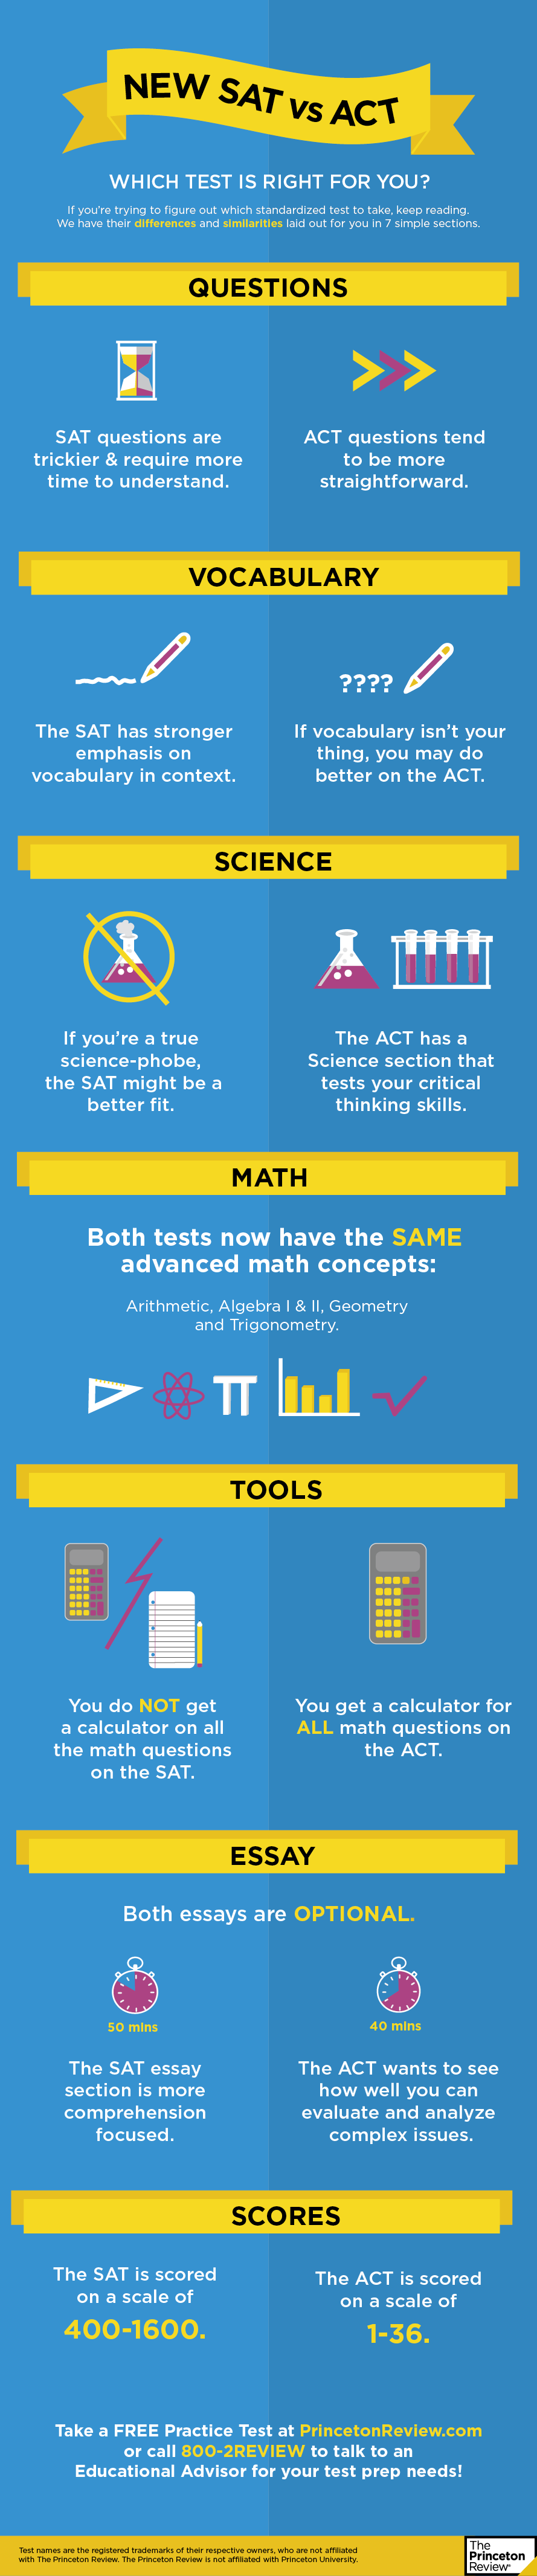 college archives school college and high school new sat vs act infog acircmiddot high school